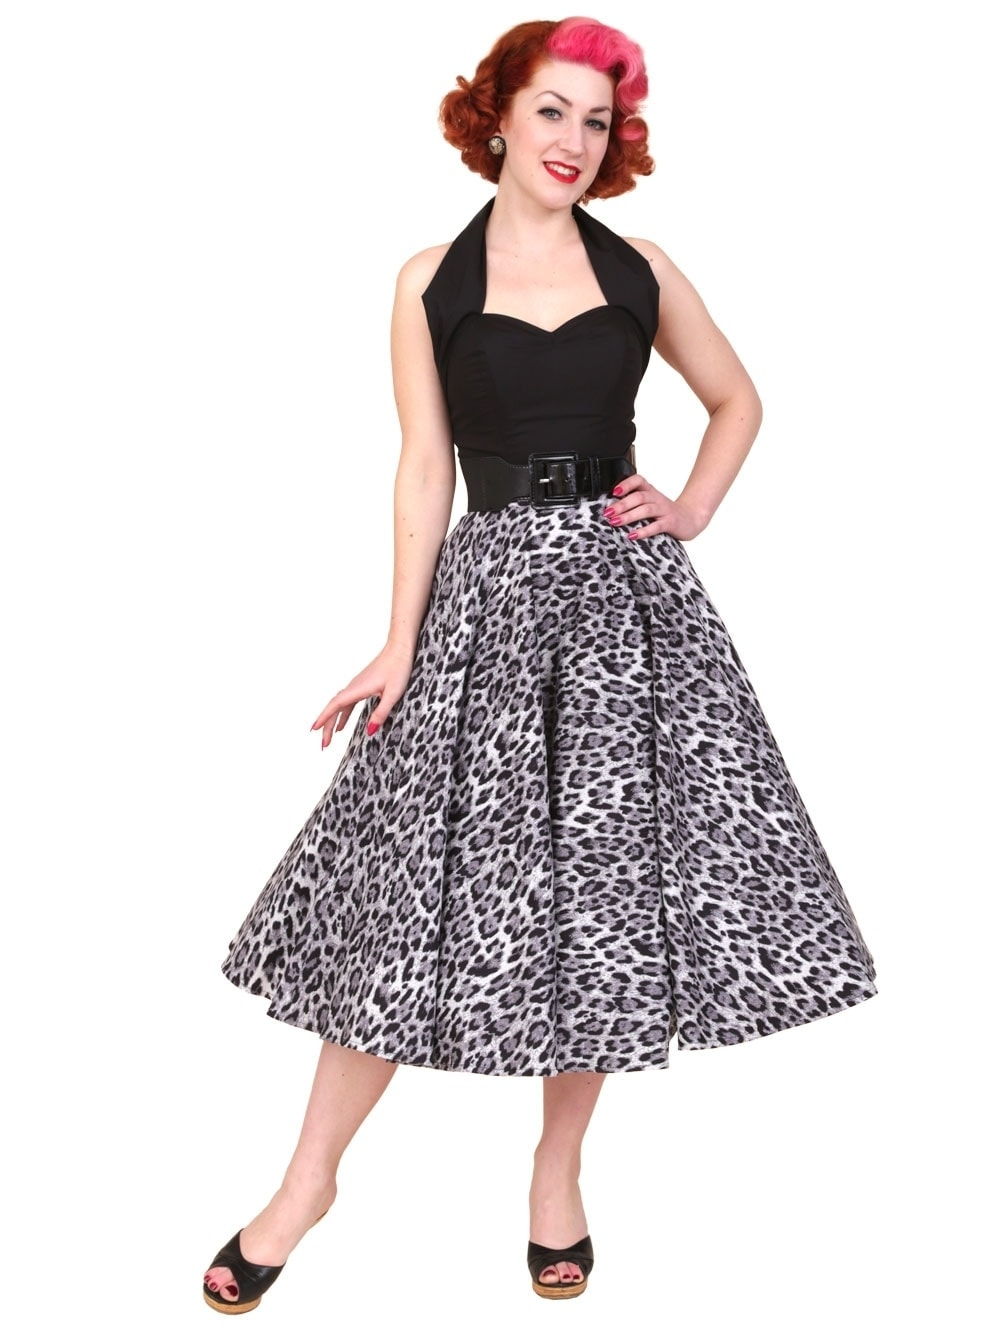 bff740b955b2 1950s Circle Skirt Silver Leopard from Vivien of Holloway